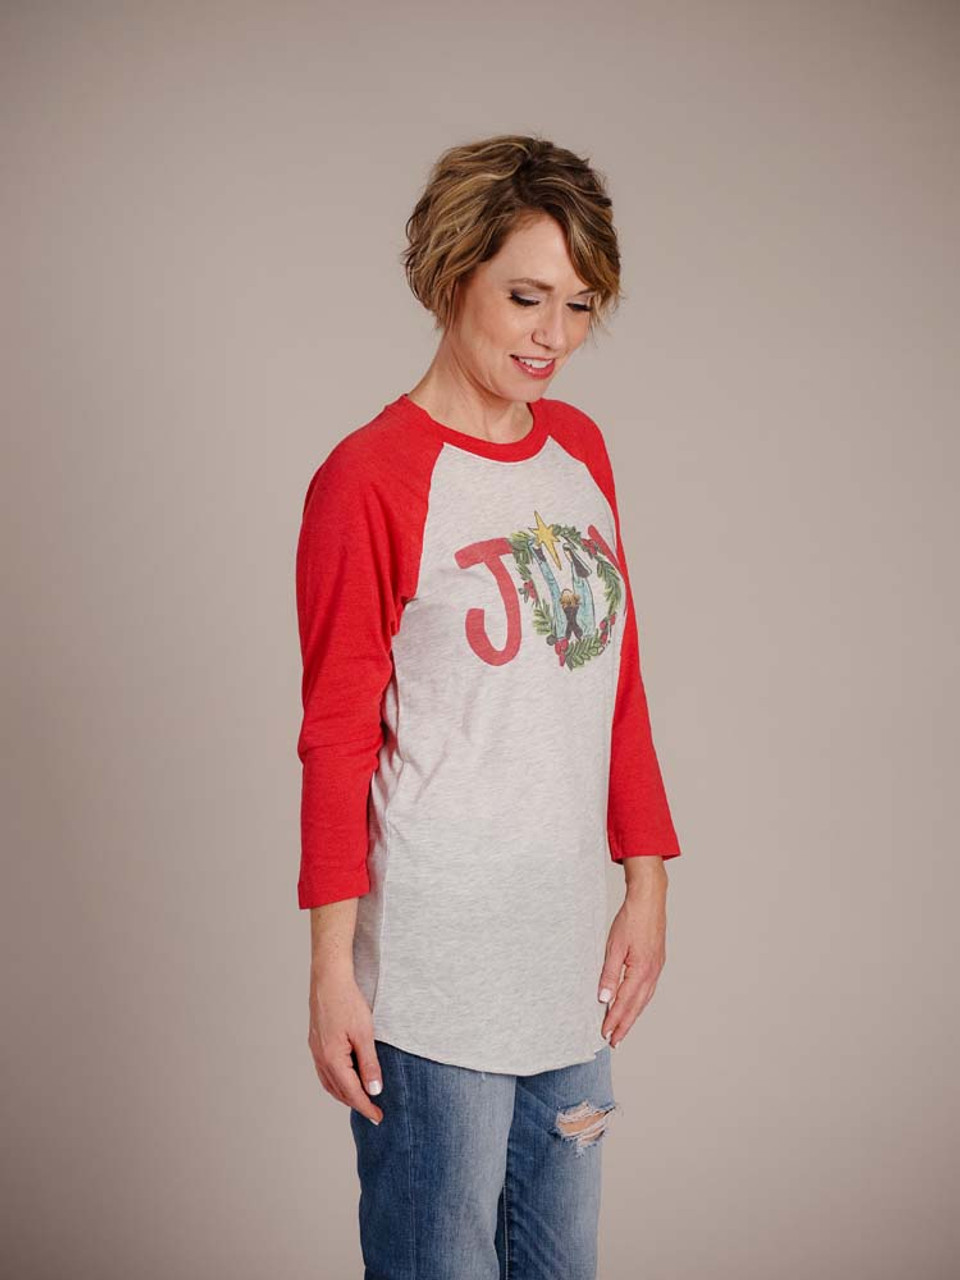 joy with nativity scene graphic christmas t-shirt